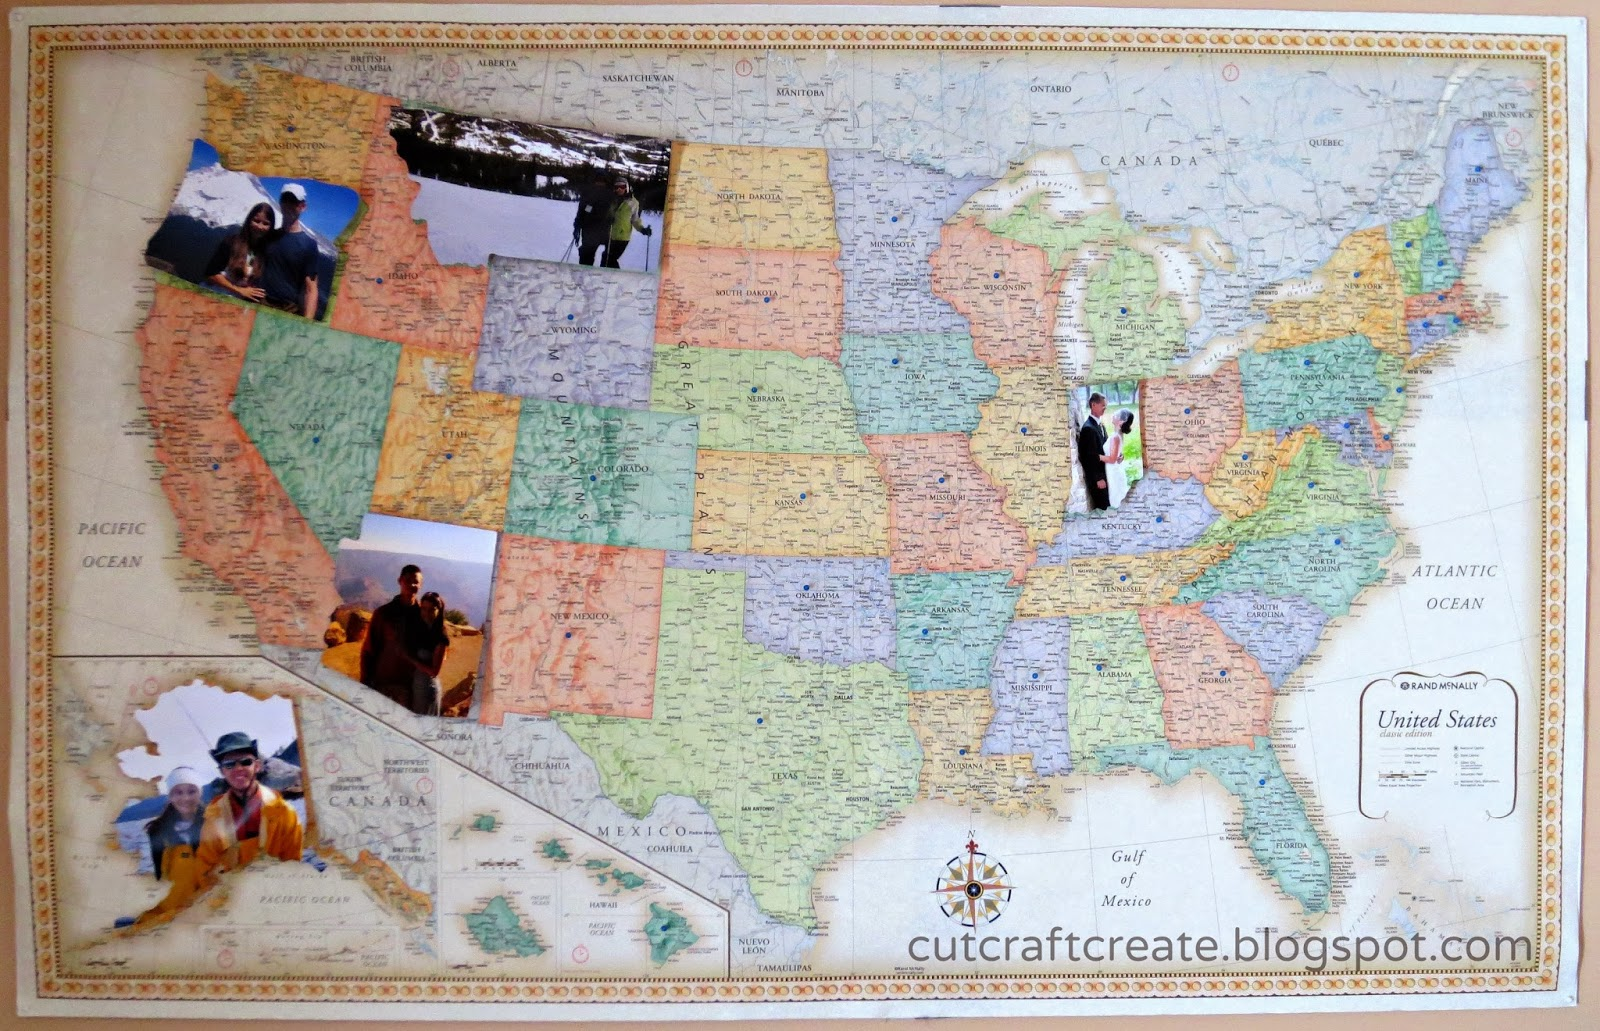 United States Map Picture Frame.Cut Craft Create Personalized Photo Map